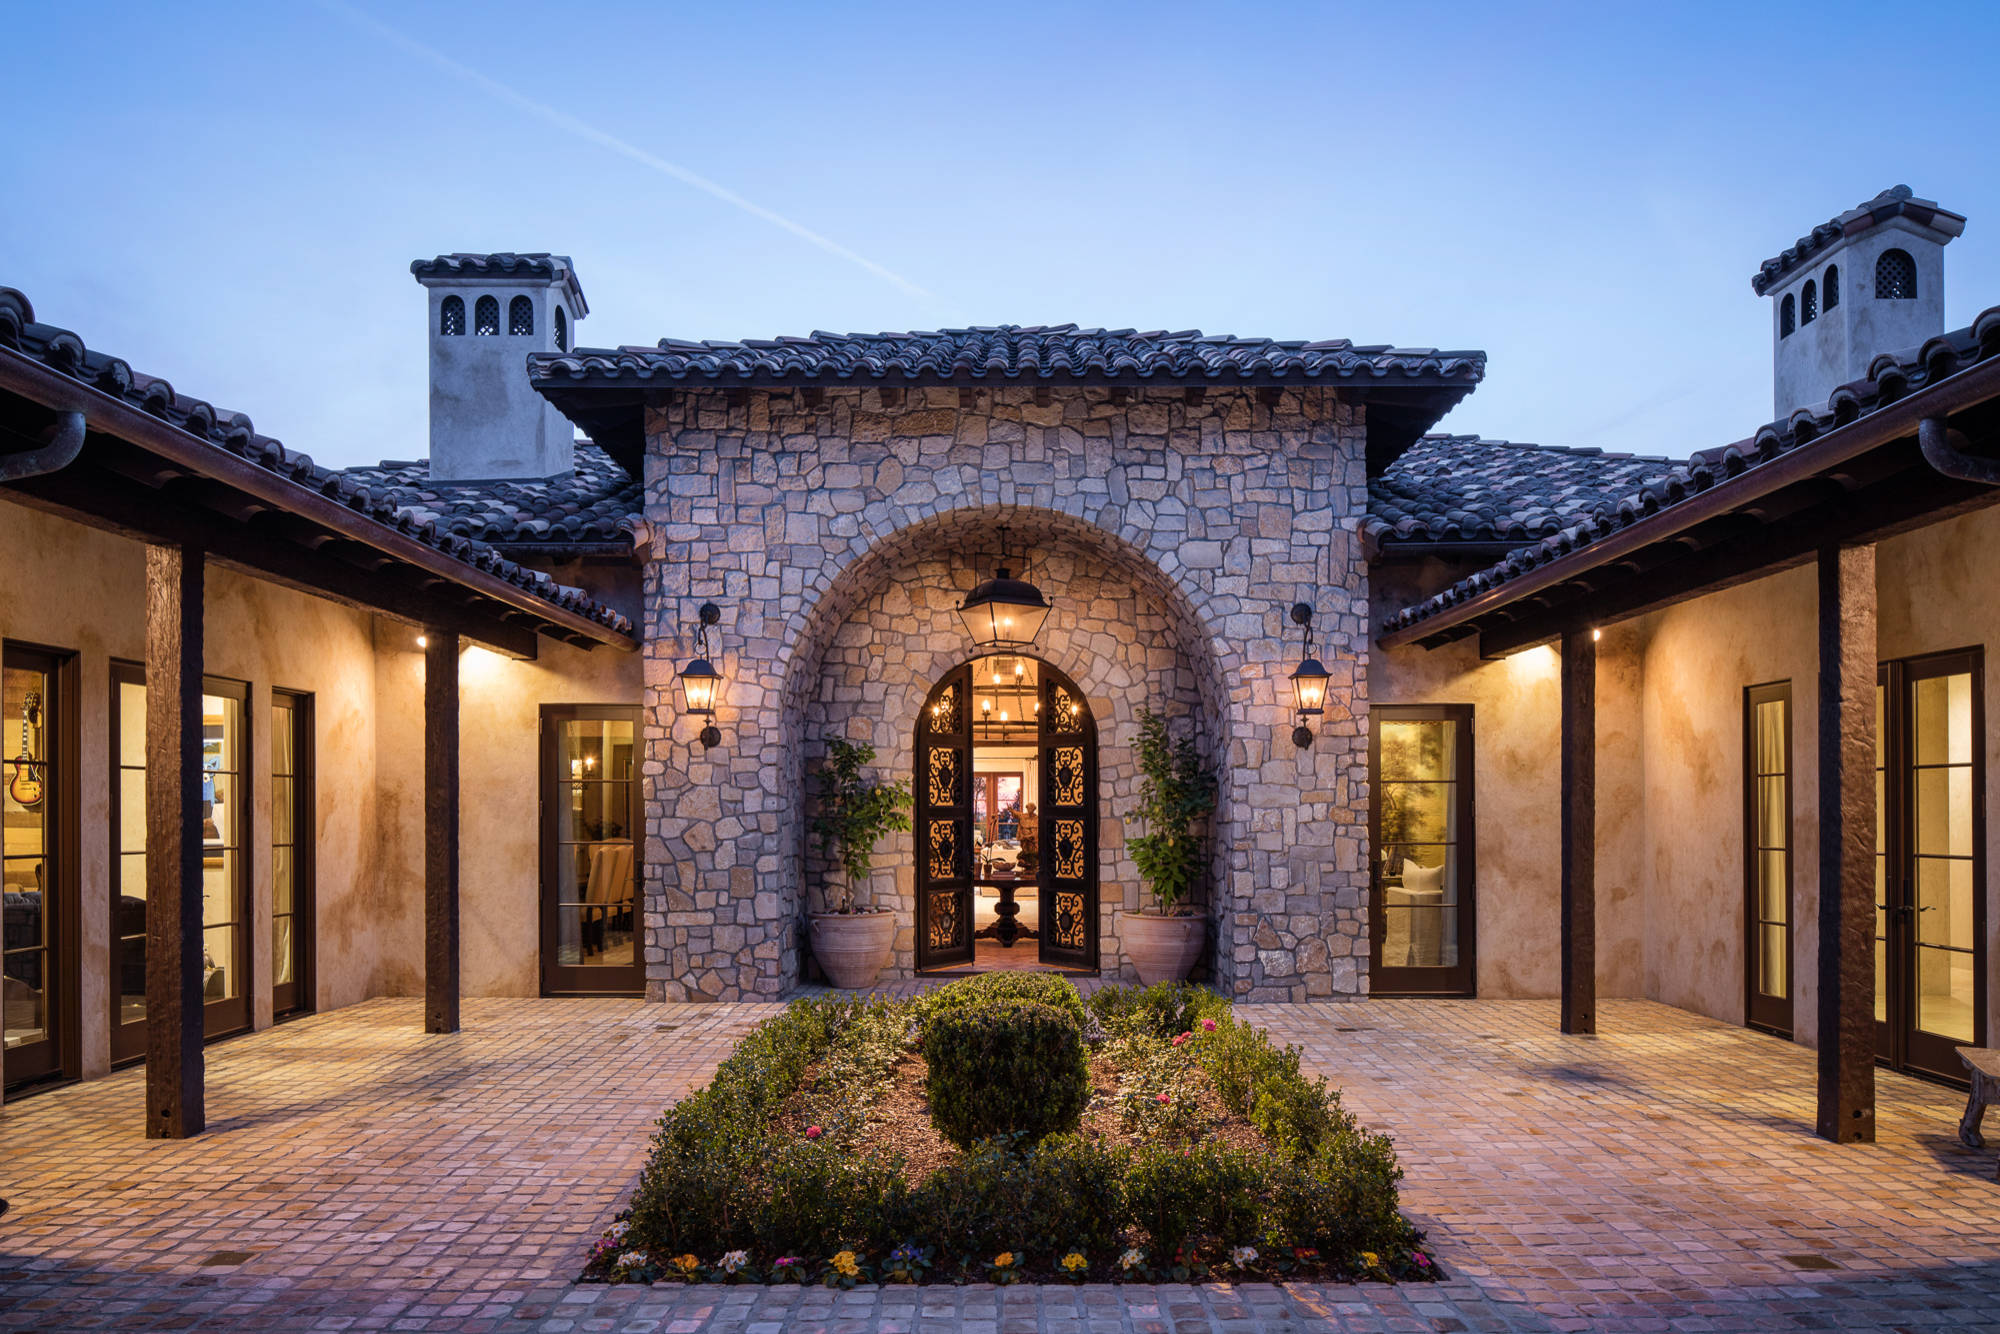 16-Tempting-Mediterranean-Entrance-Designs-That-Will-Stun-You-4 Ranch Home Front Entry Designs on ranch home porch designs, ranch home basement designs, ranch home siding designs, ranch home exterior designs, ranch home patio designs, ranch home interior designs, ranch home living room designs, ranch home kitchen designs,